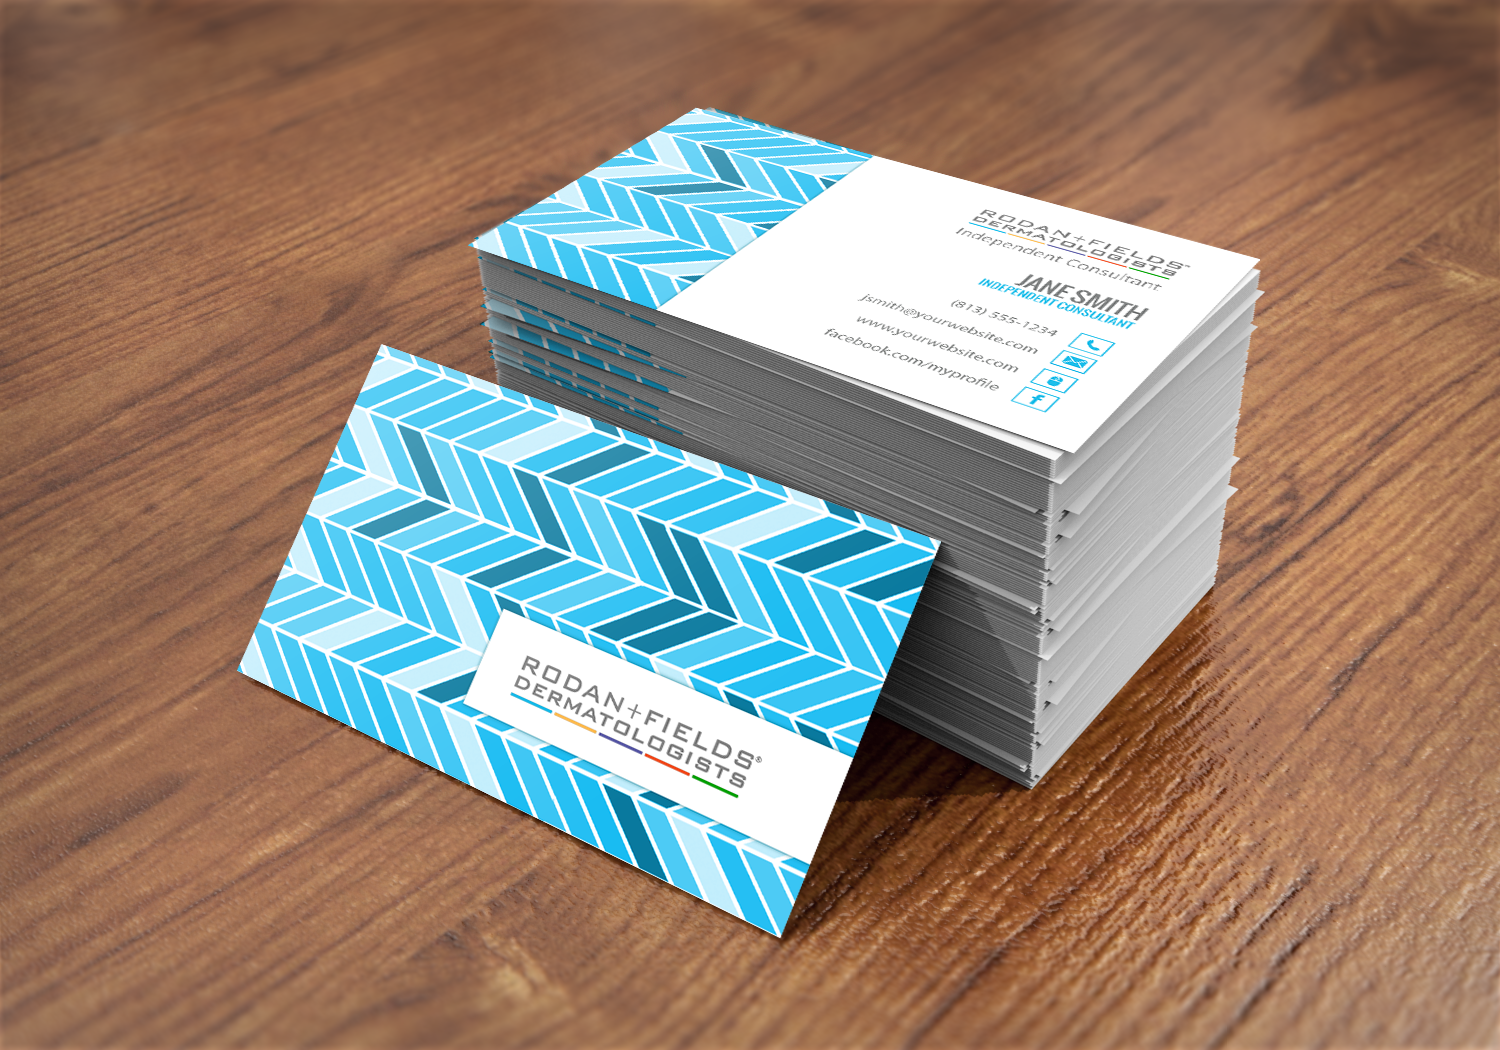 New Rodan Fields Business Cards Are Here Mlm Rodanandfields Print Paper Graphicdesi Rodan And Fields Business Rodan And Fields Printing Business Cards